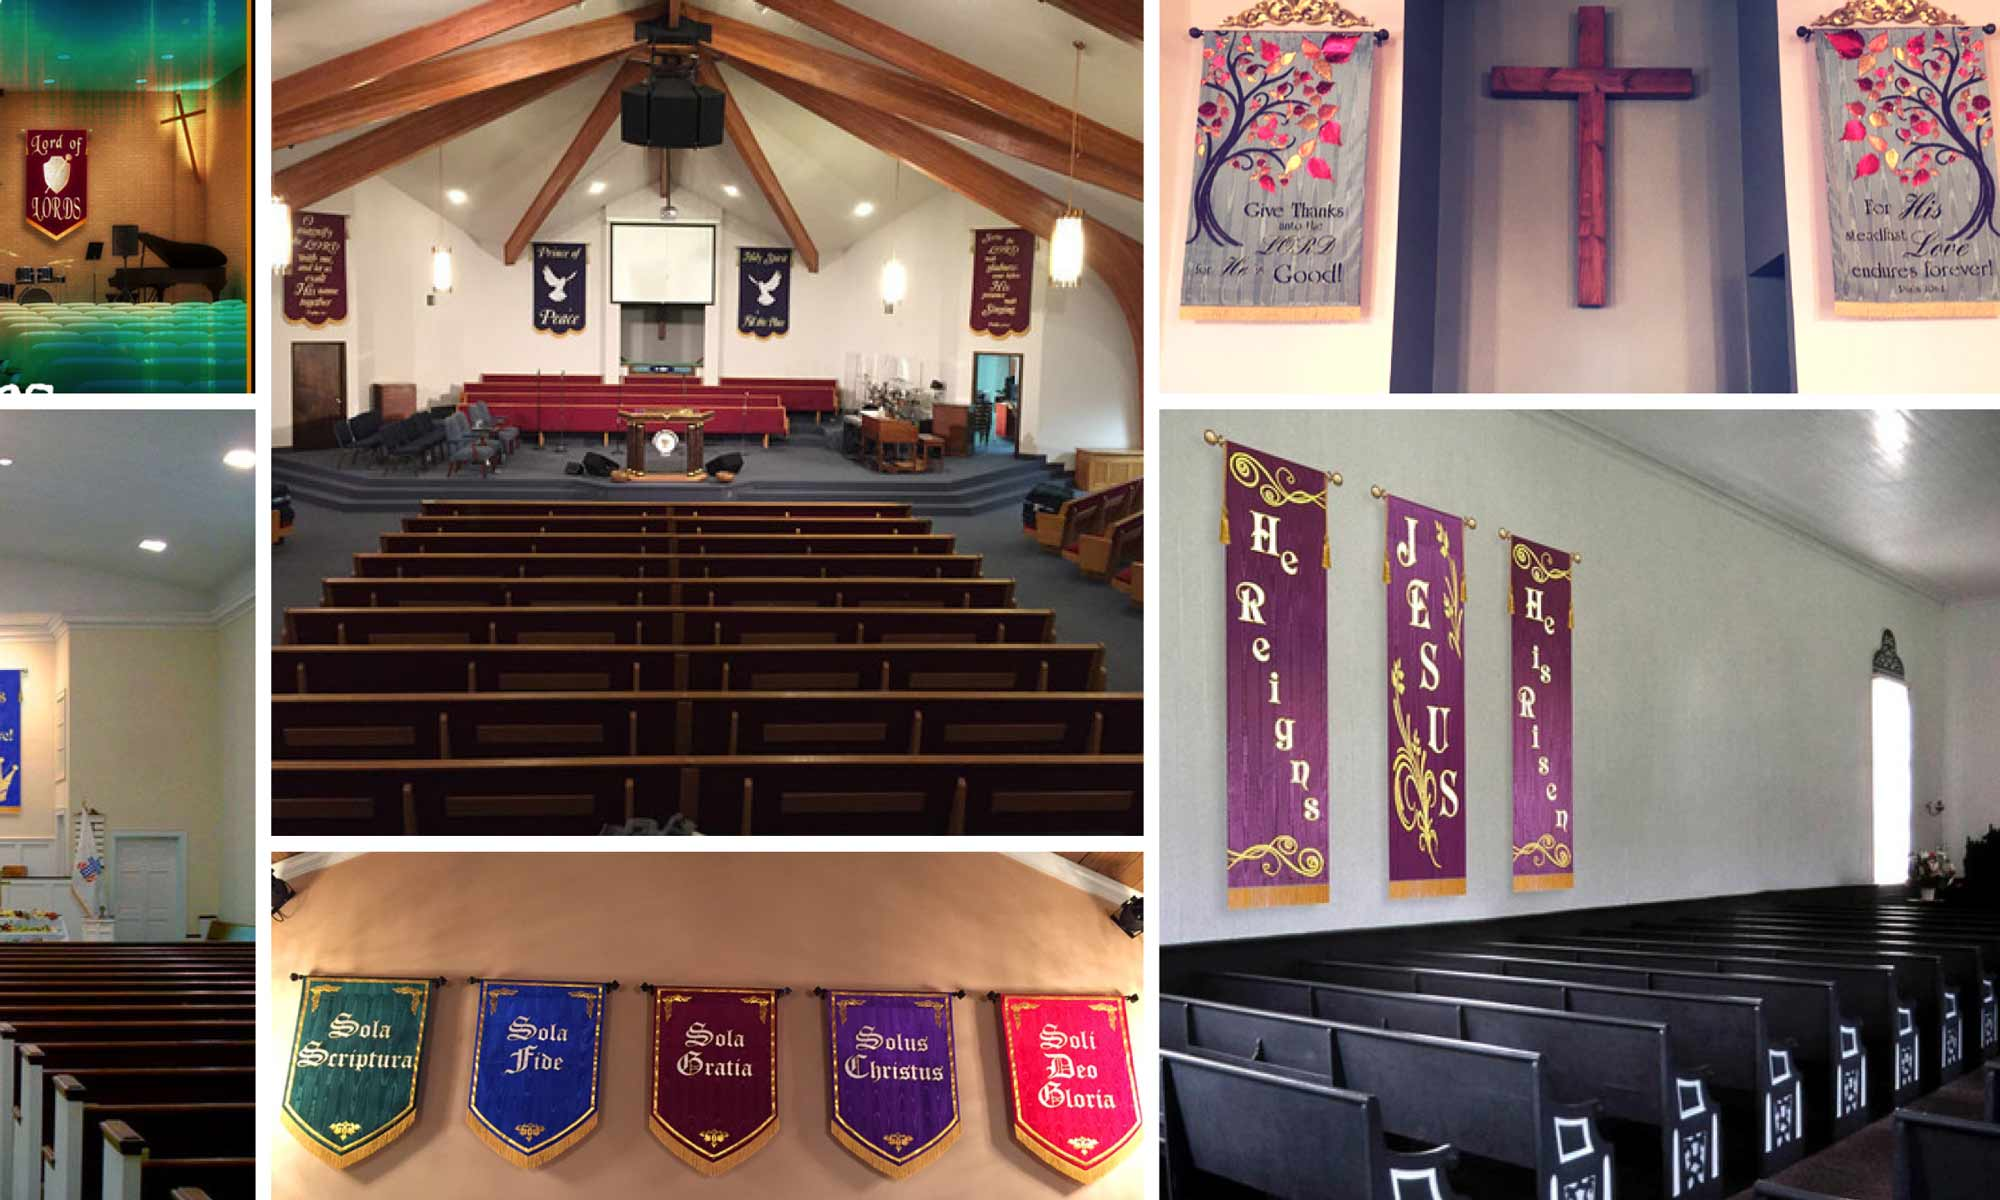 Montage of church walls that really show how church banners can decorate your church walls